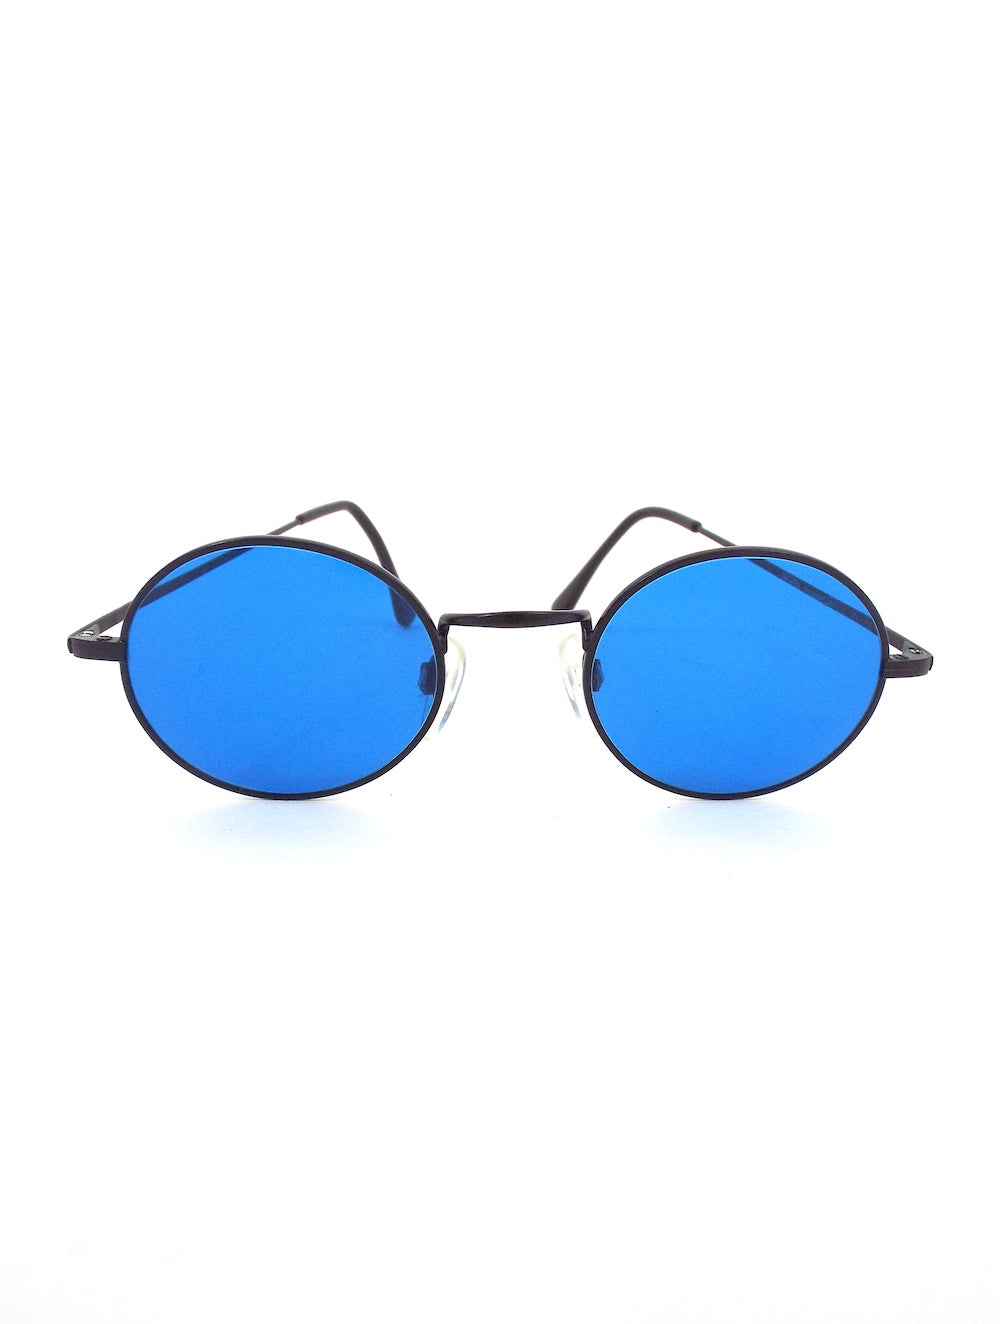 Vintage 90s Round Blue Tinted Sunglasses